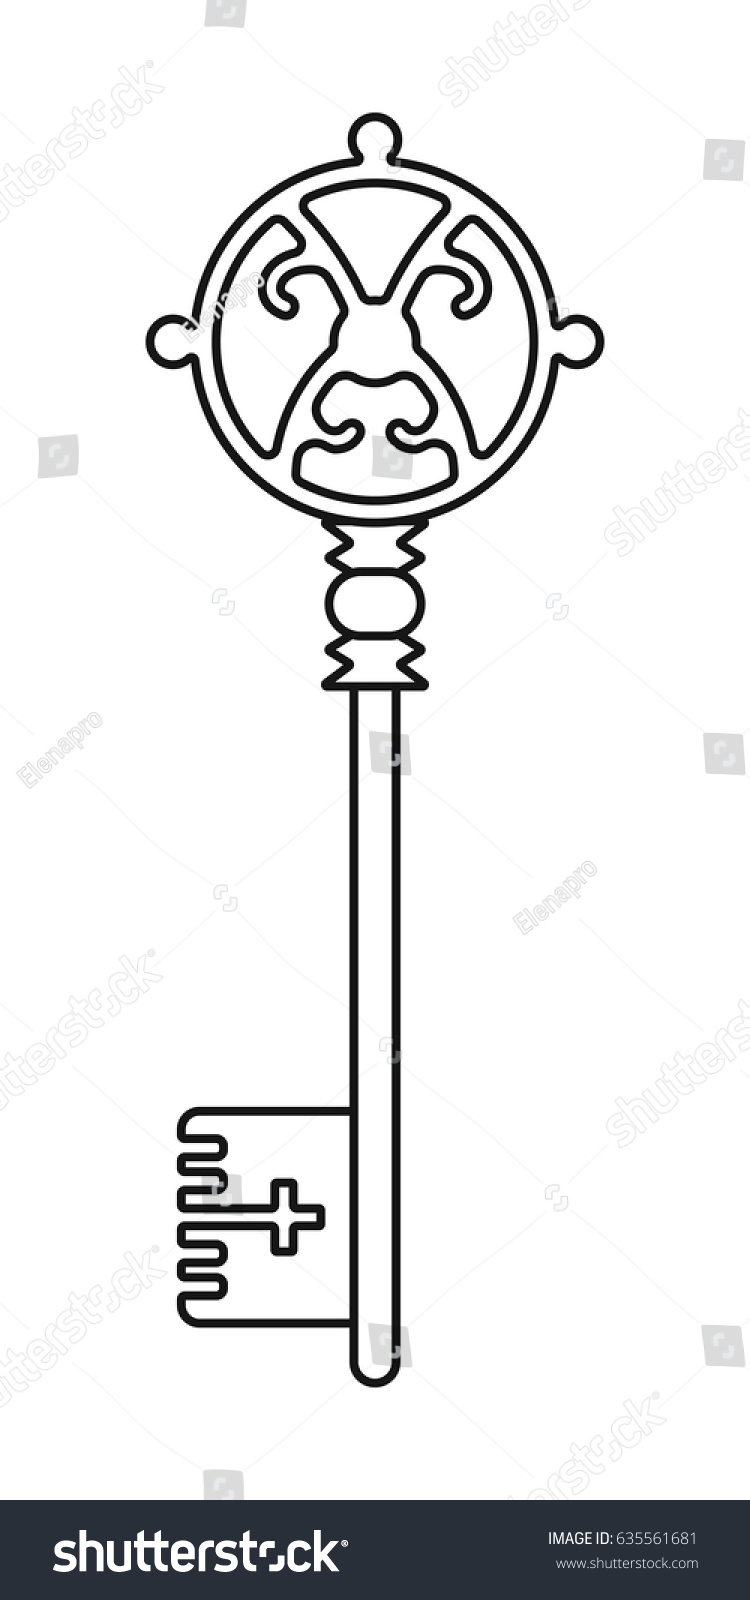 Vintage Key For Coloring Book Black Linear Silhouette Isolated On White Background